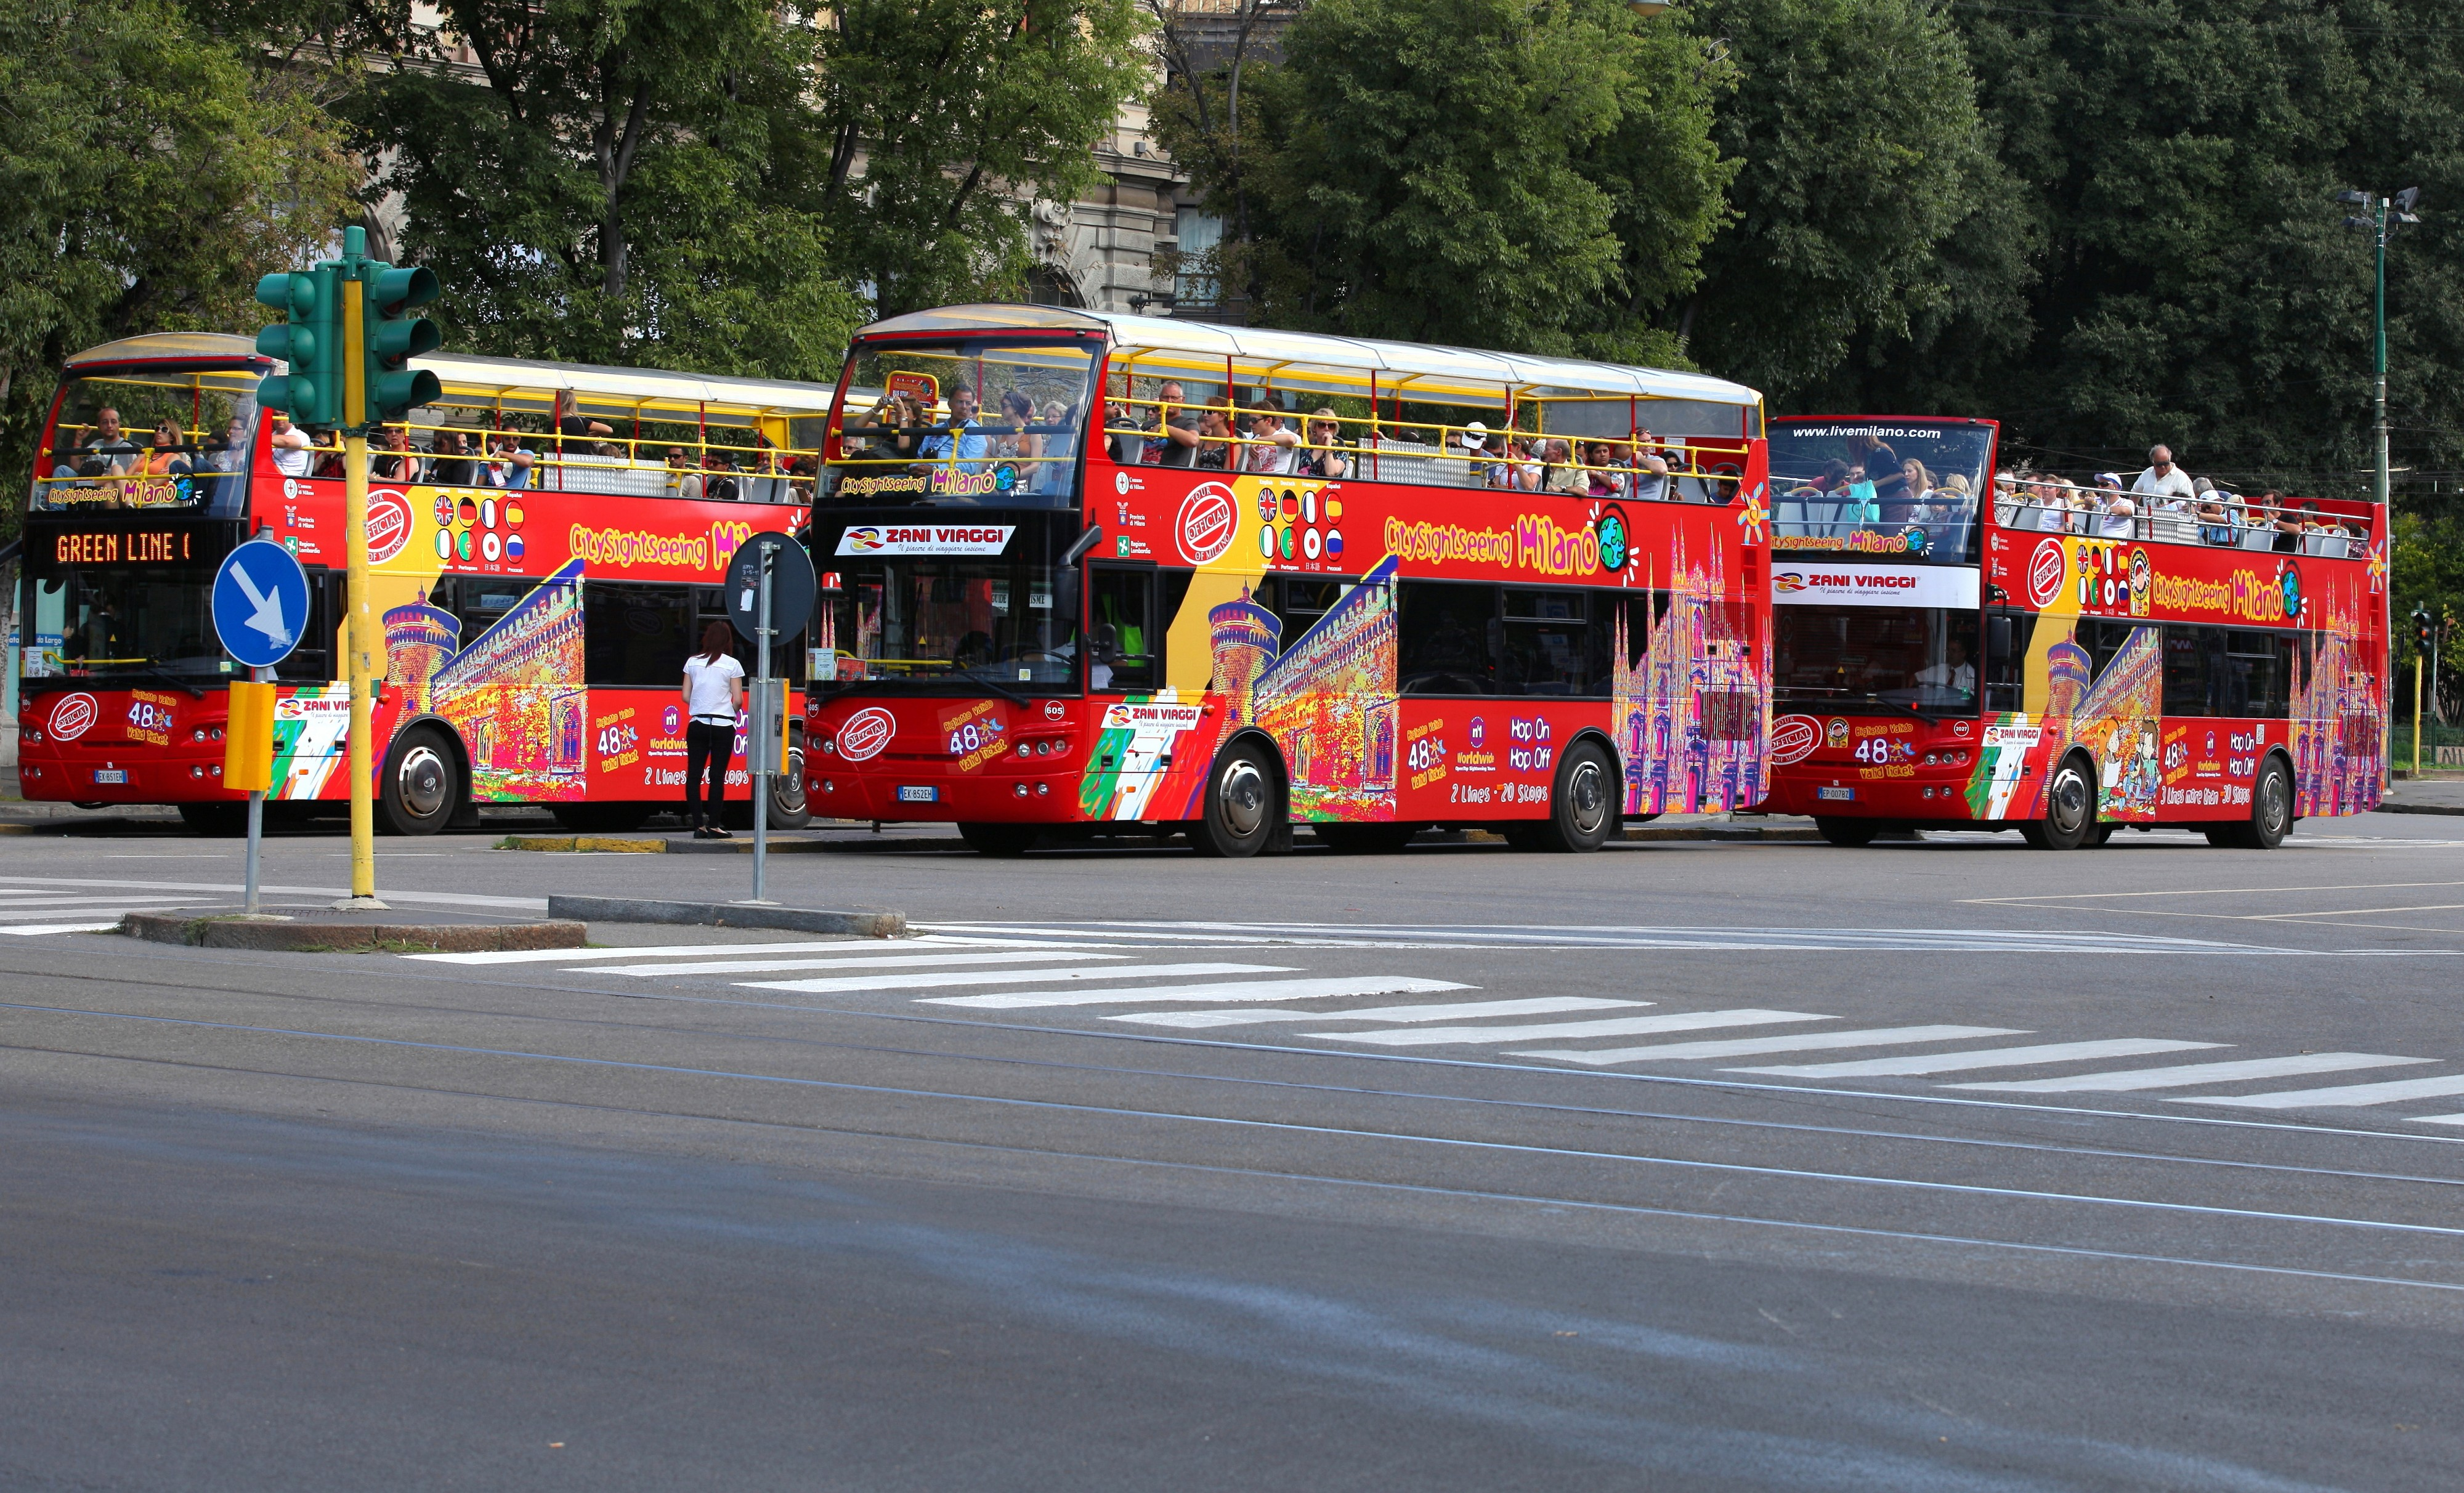 sightseeing buses in Milan, Italy, European Union, August 2013, picture 57